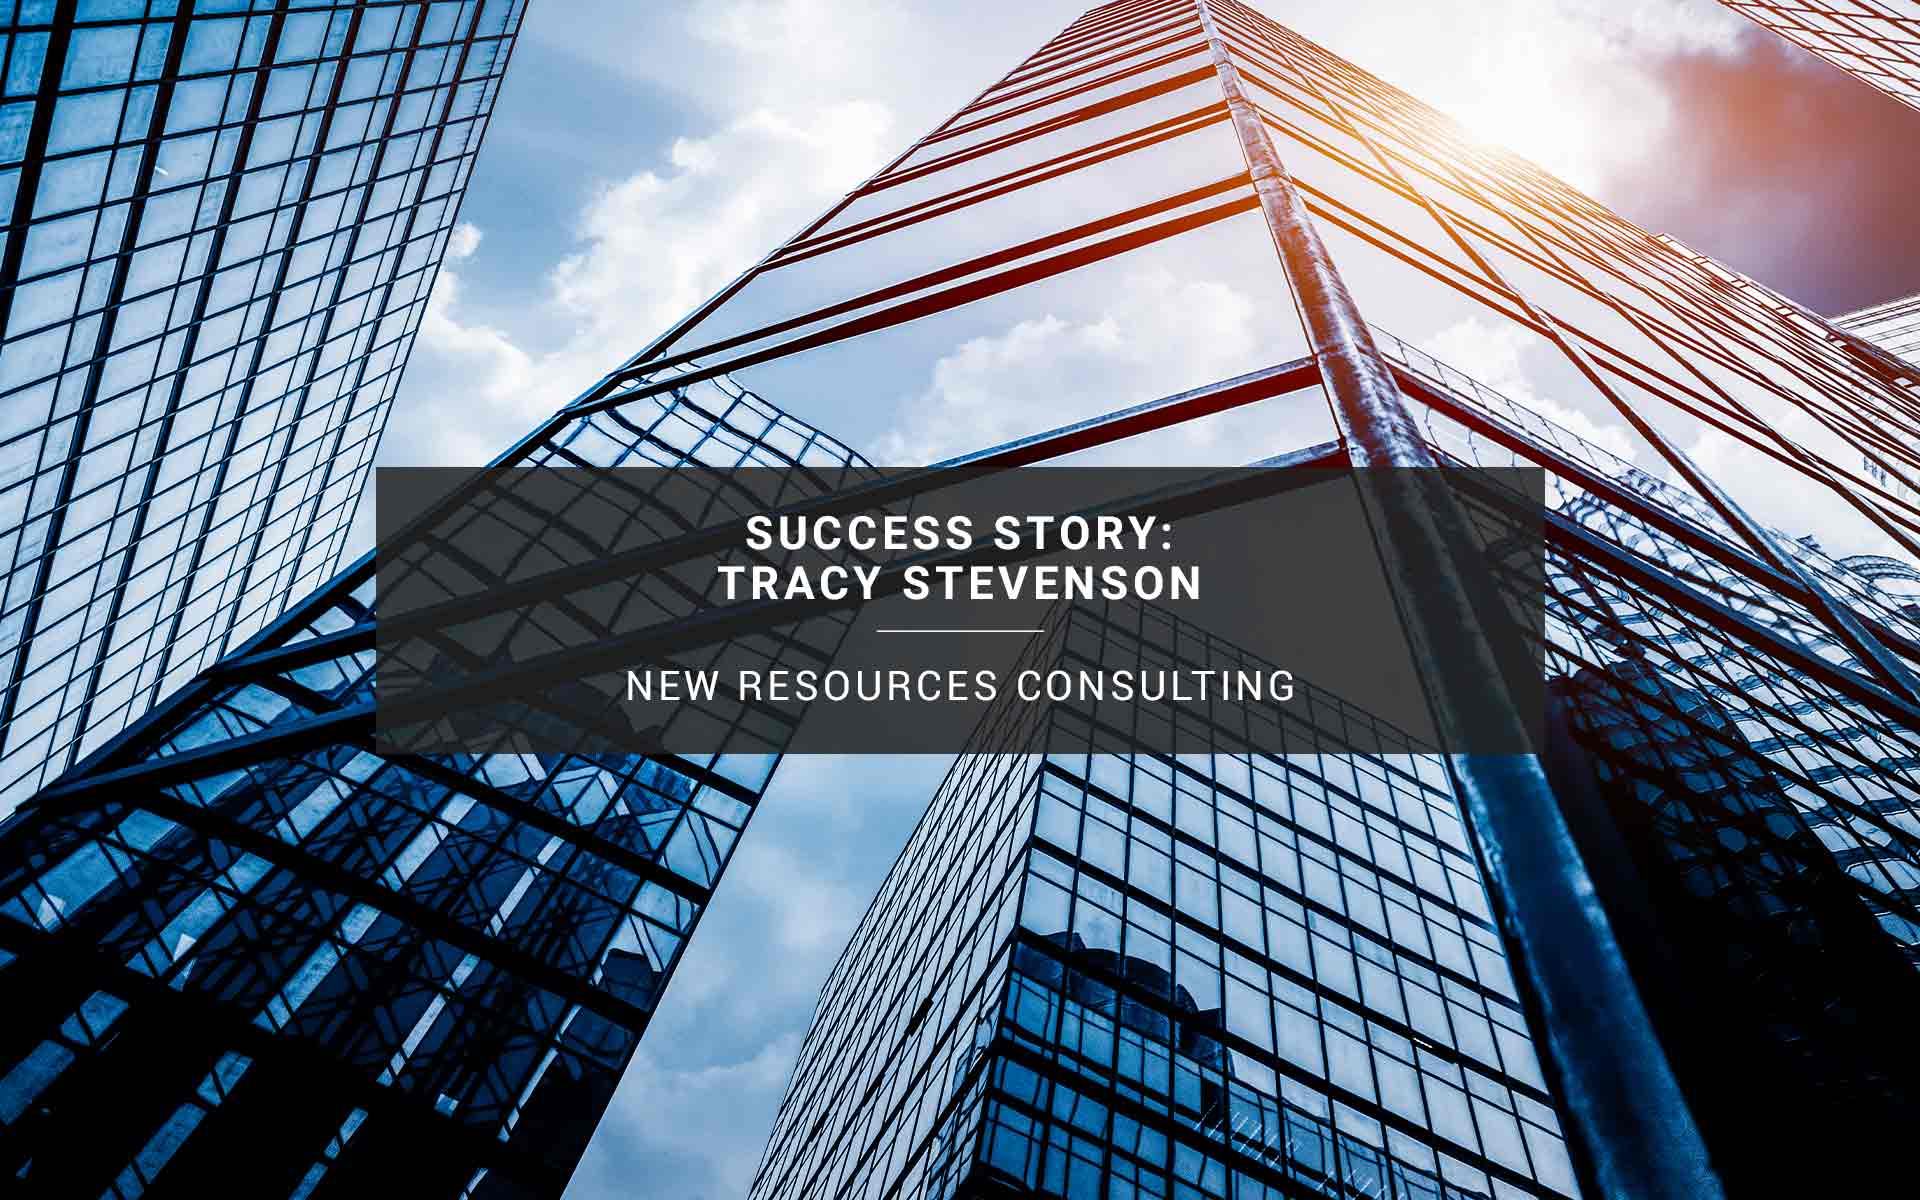 Success Story: Tracy Stevenson | New Resources Consulting